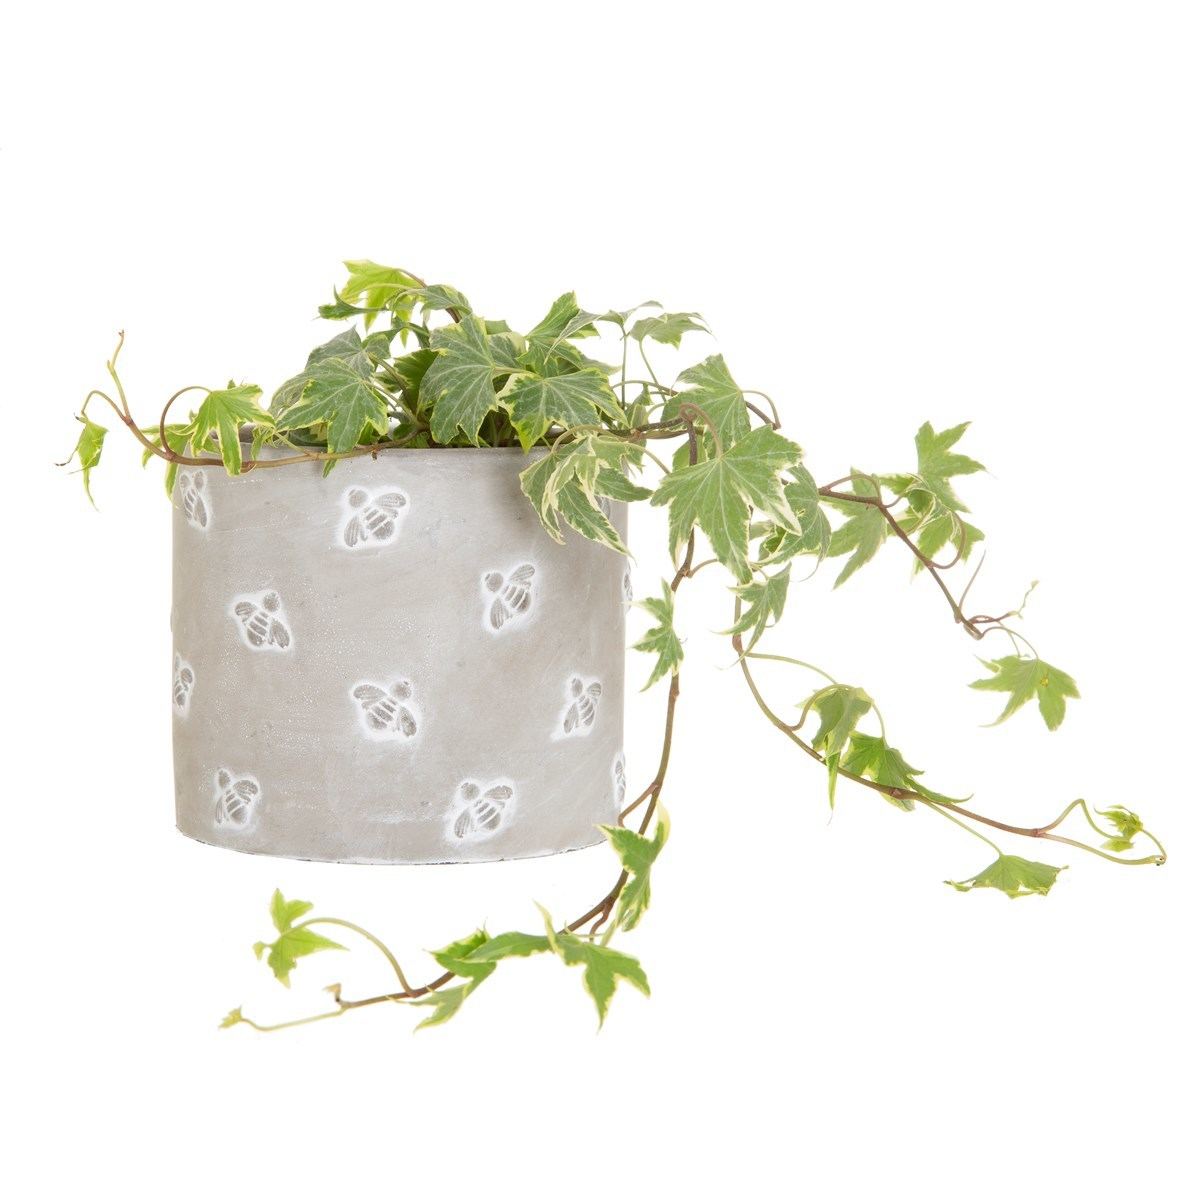 Sass & Belle: Queen Bee Cement Planter image